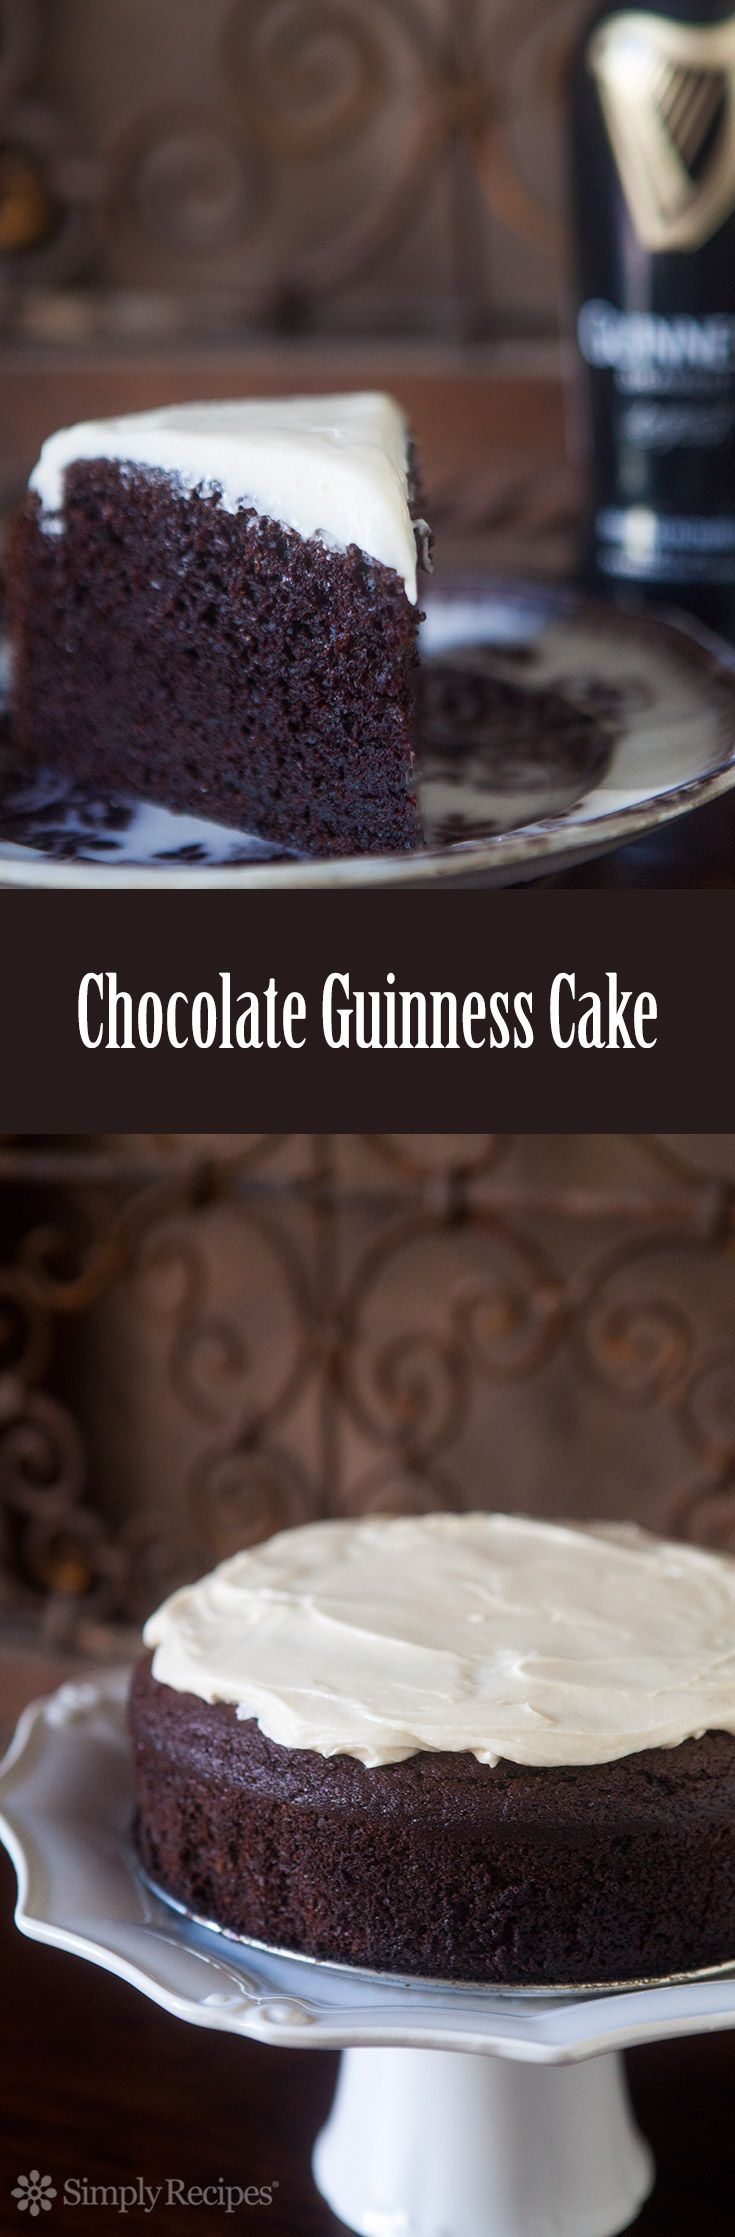 Chocolate Guinness Cake - Rich, moist, chocolate cake spiked with stout beer. Malty, sweet, and perfect for a St. Patrick's day party.